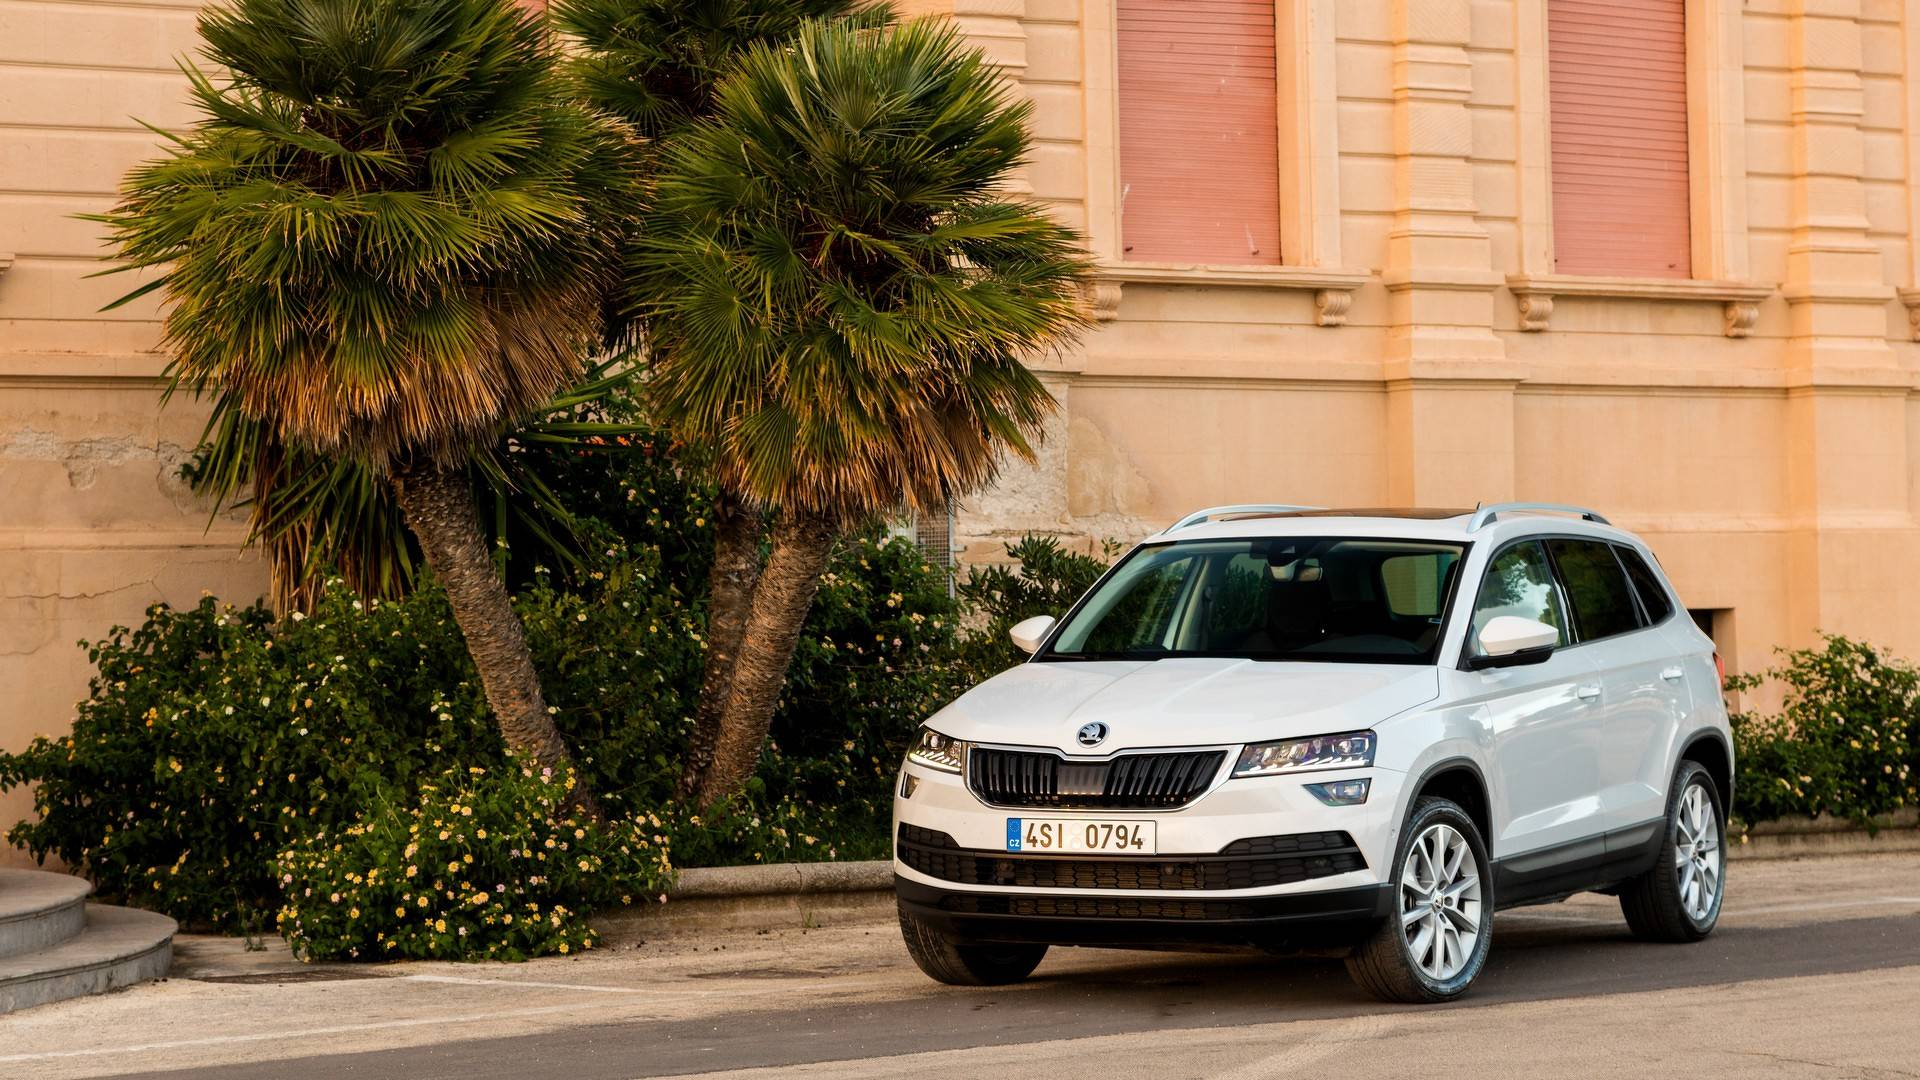 The Czech automaker Skoda announced the release next year of a crossover with a coupe body